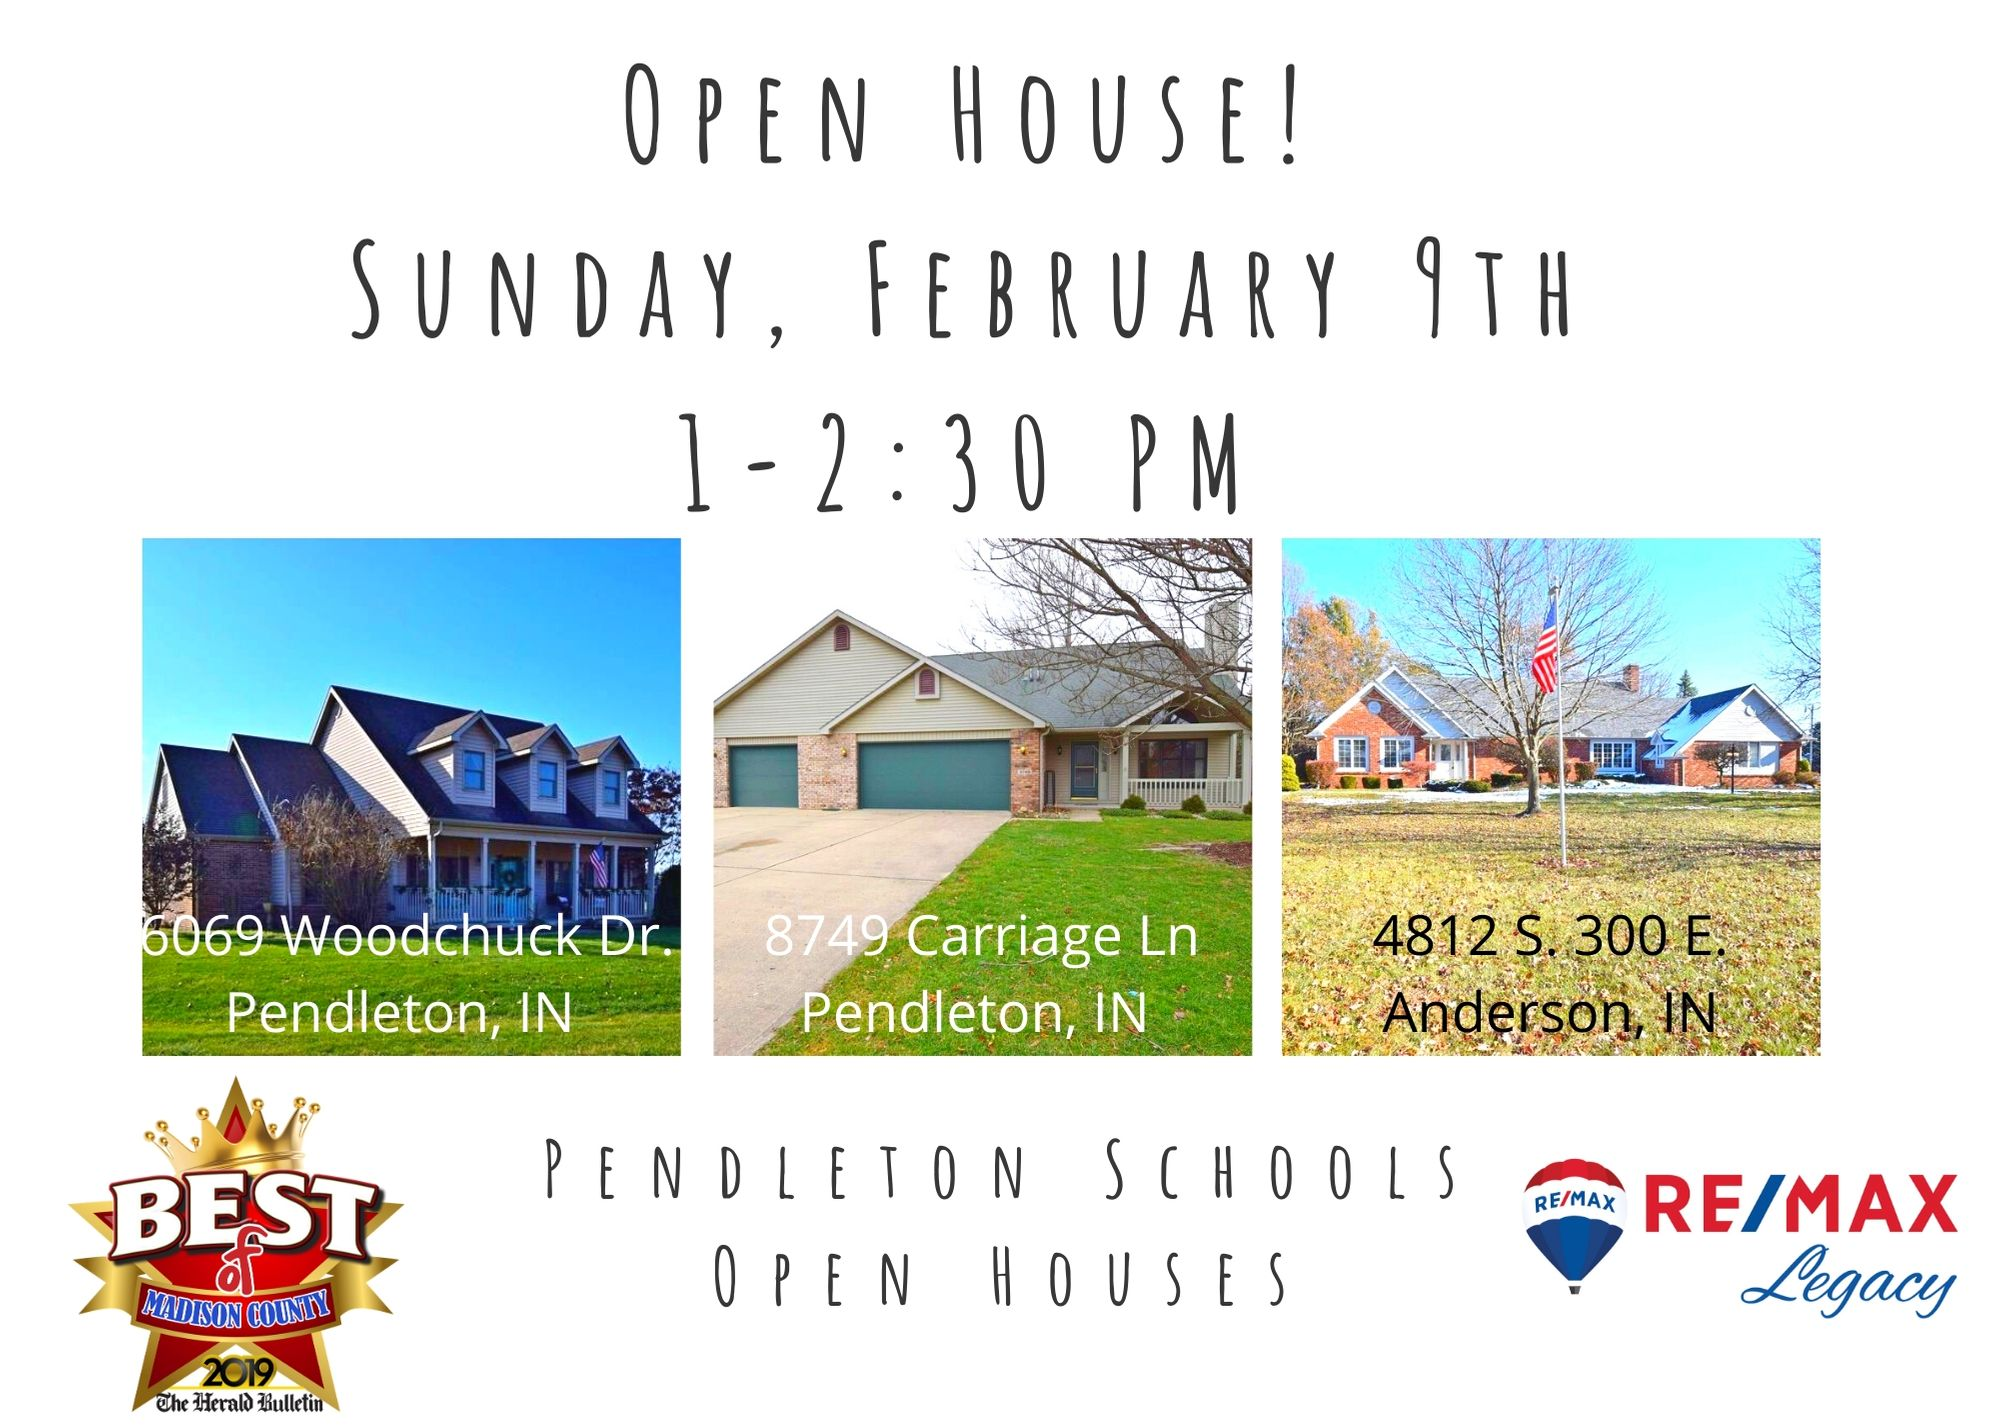 RE/MAX Legacy Pendleton School Open House